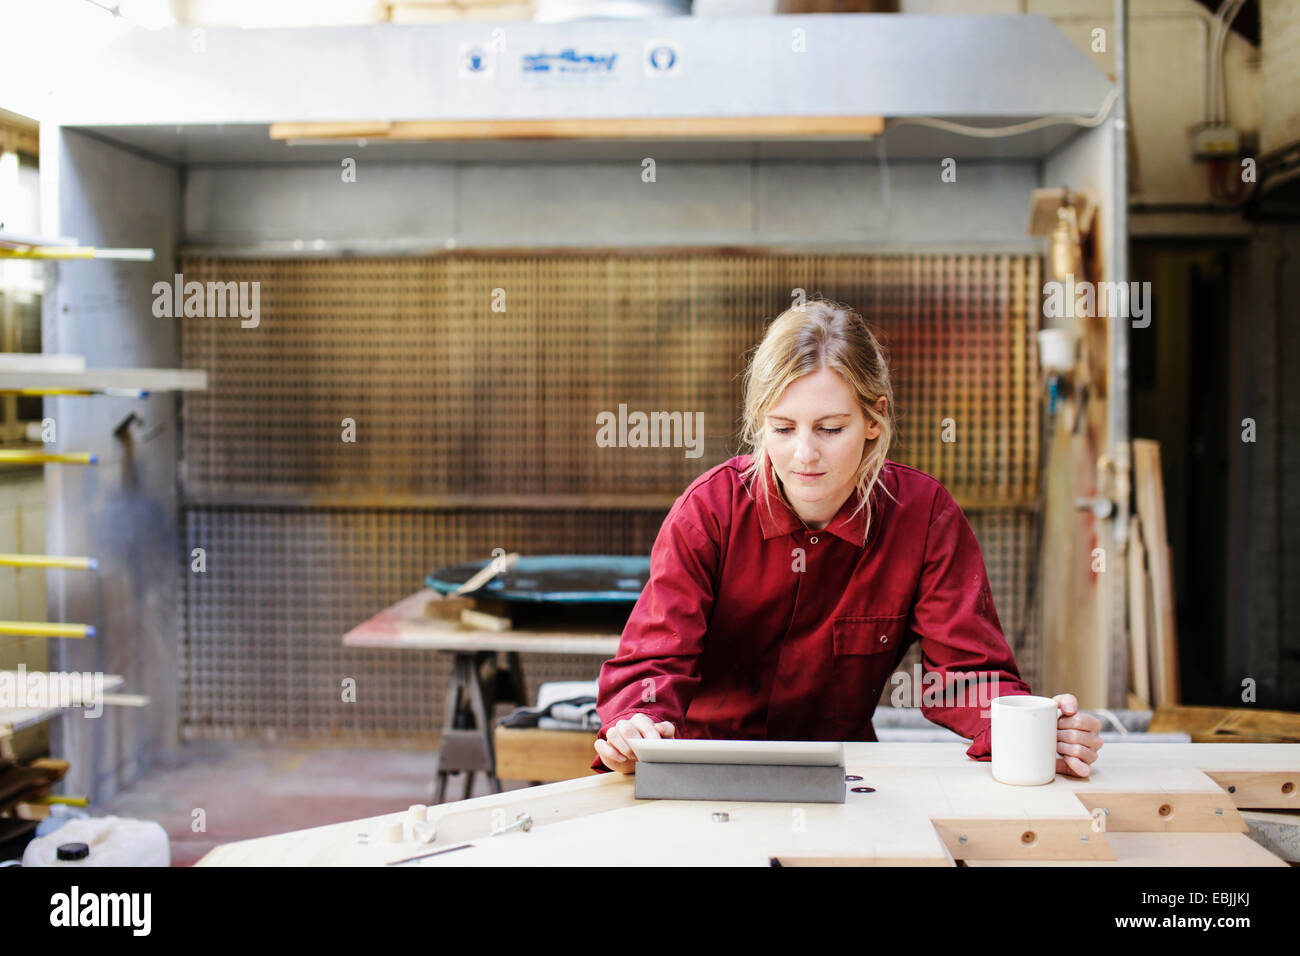 Young craftswoman using digital tablet in pipe organ workshop - Stock Image